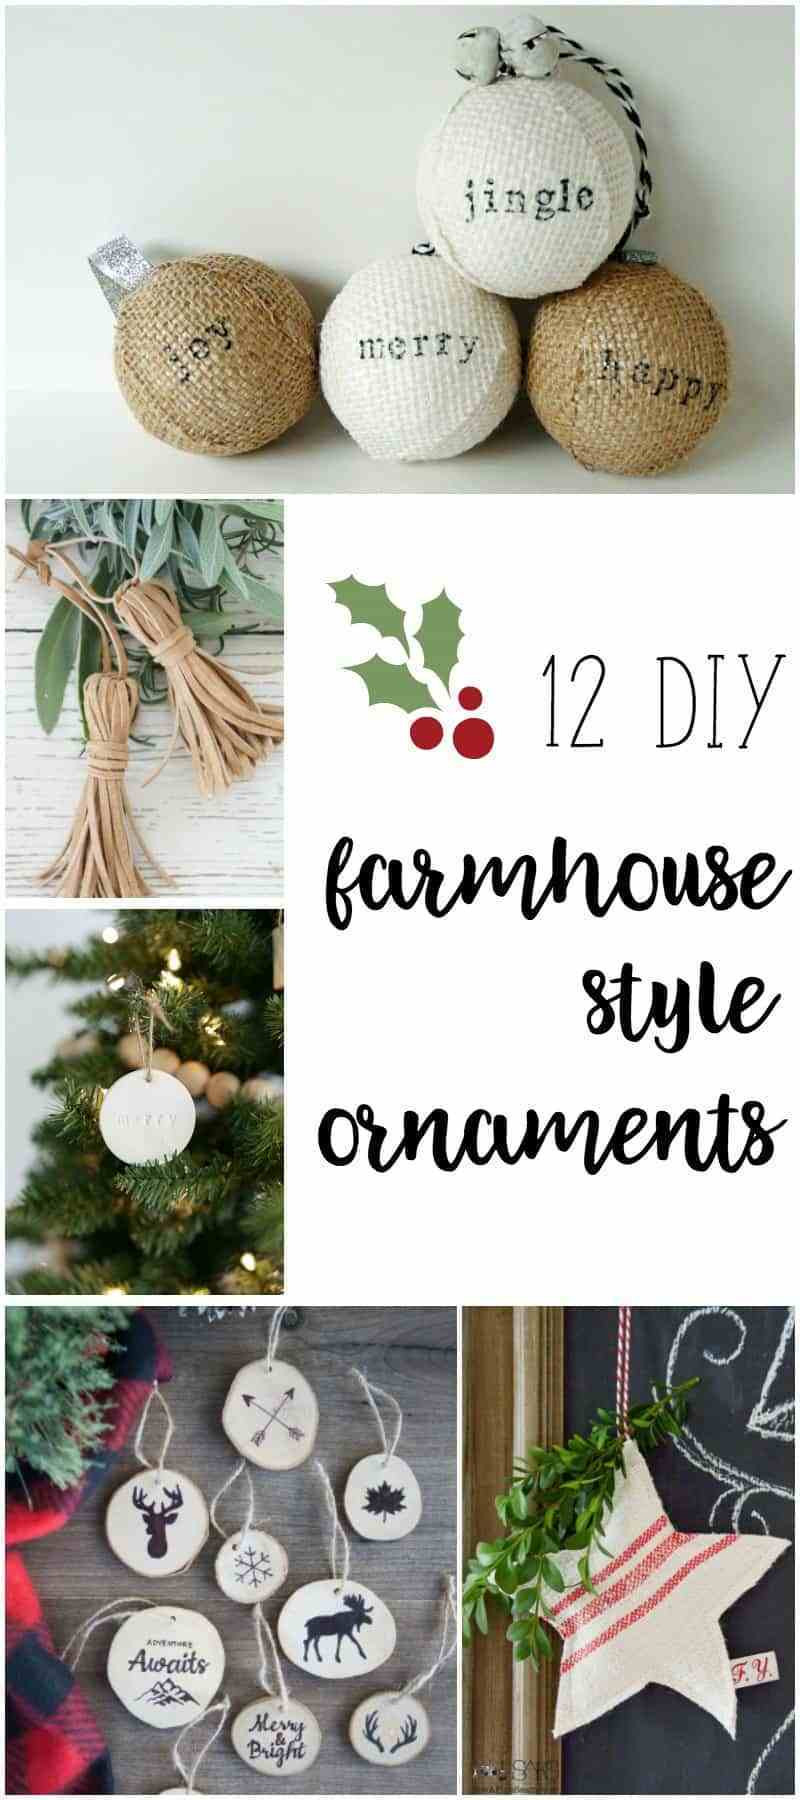 Best ideas about Pinterest Christmas DIY . Save or Pin Farmhouse Style Ornaments for Christmas Now.